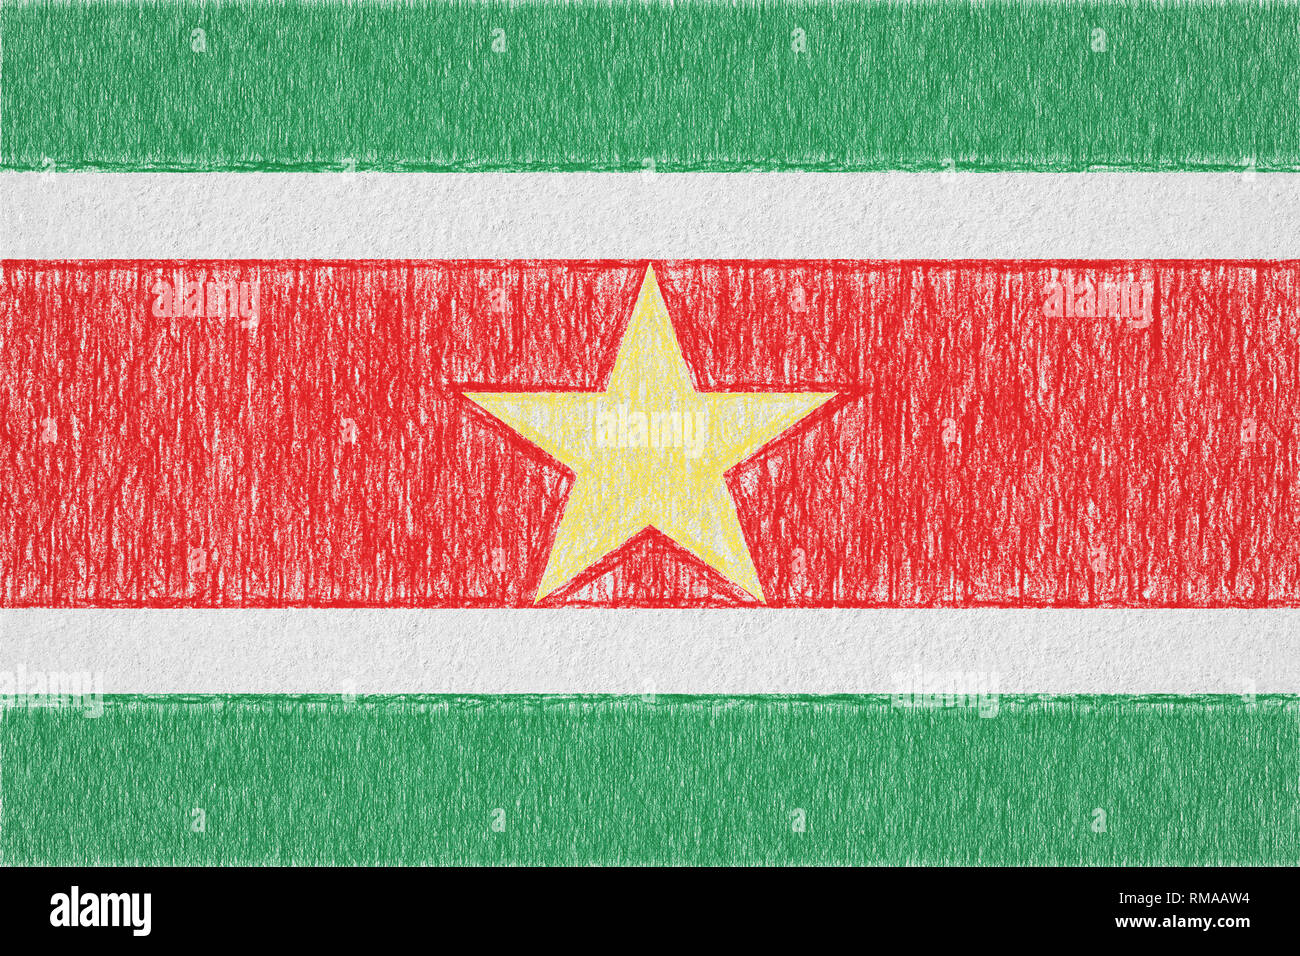 Suriname painted flag. Patriotic drawing on paper background. National flag of Suriname - Stock Image